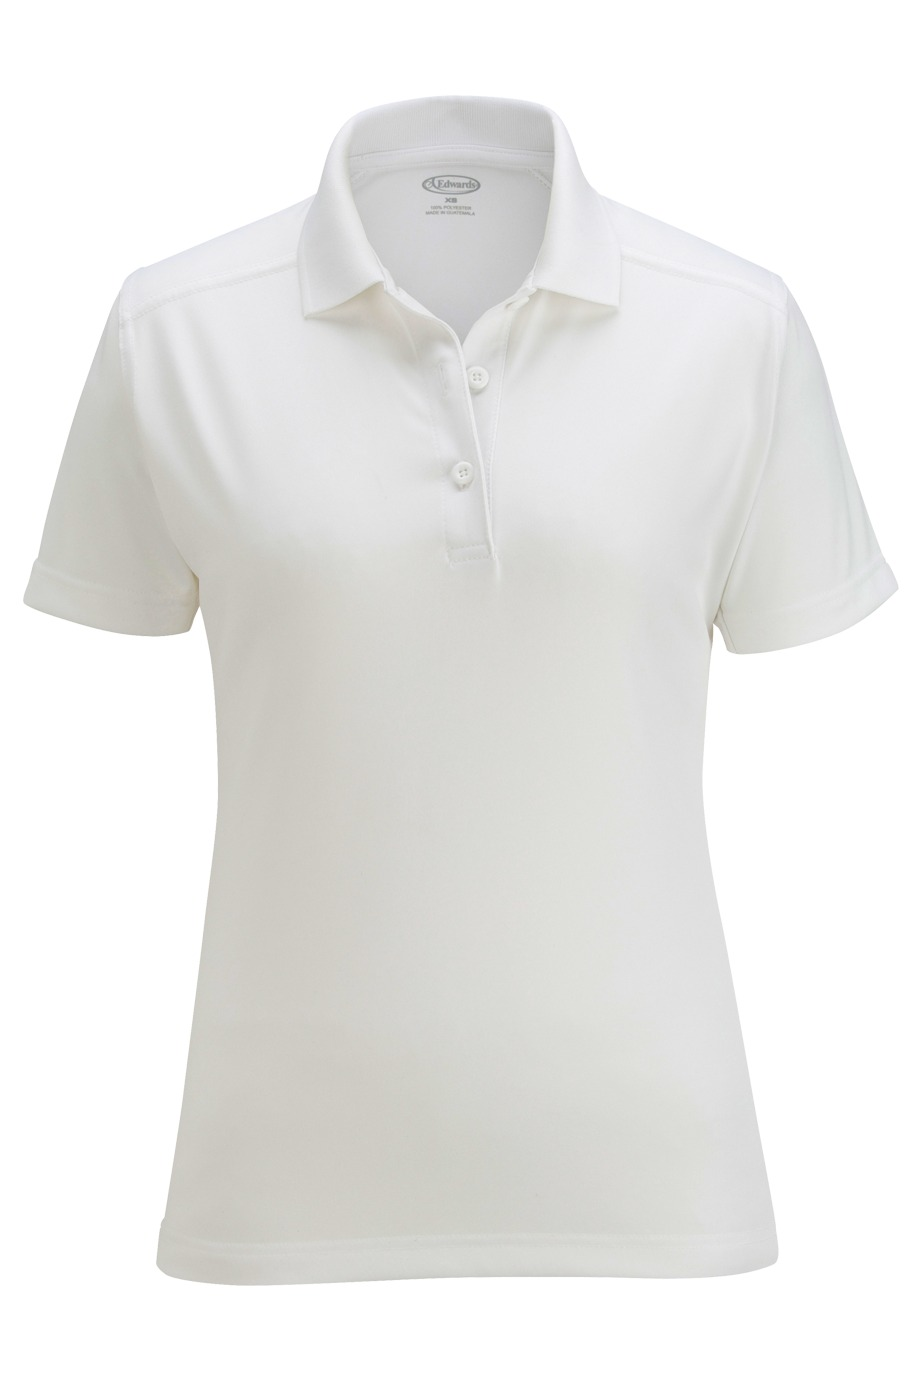 Edwards Garment 5512 - Ladies' Snag-Proof Polo